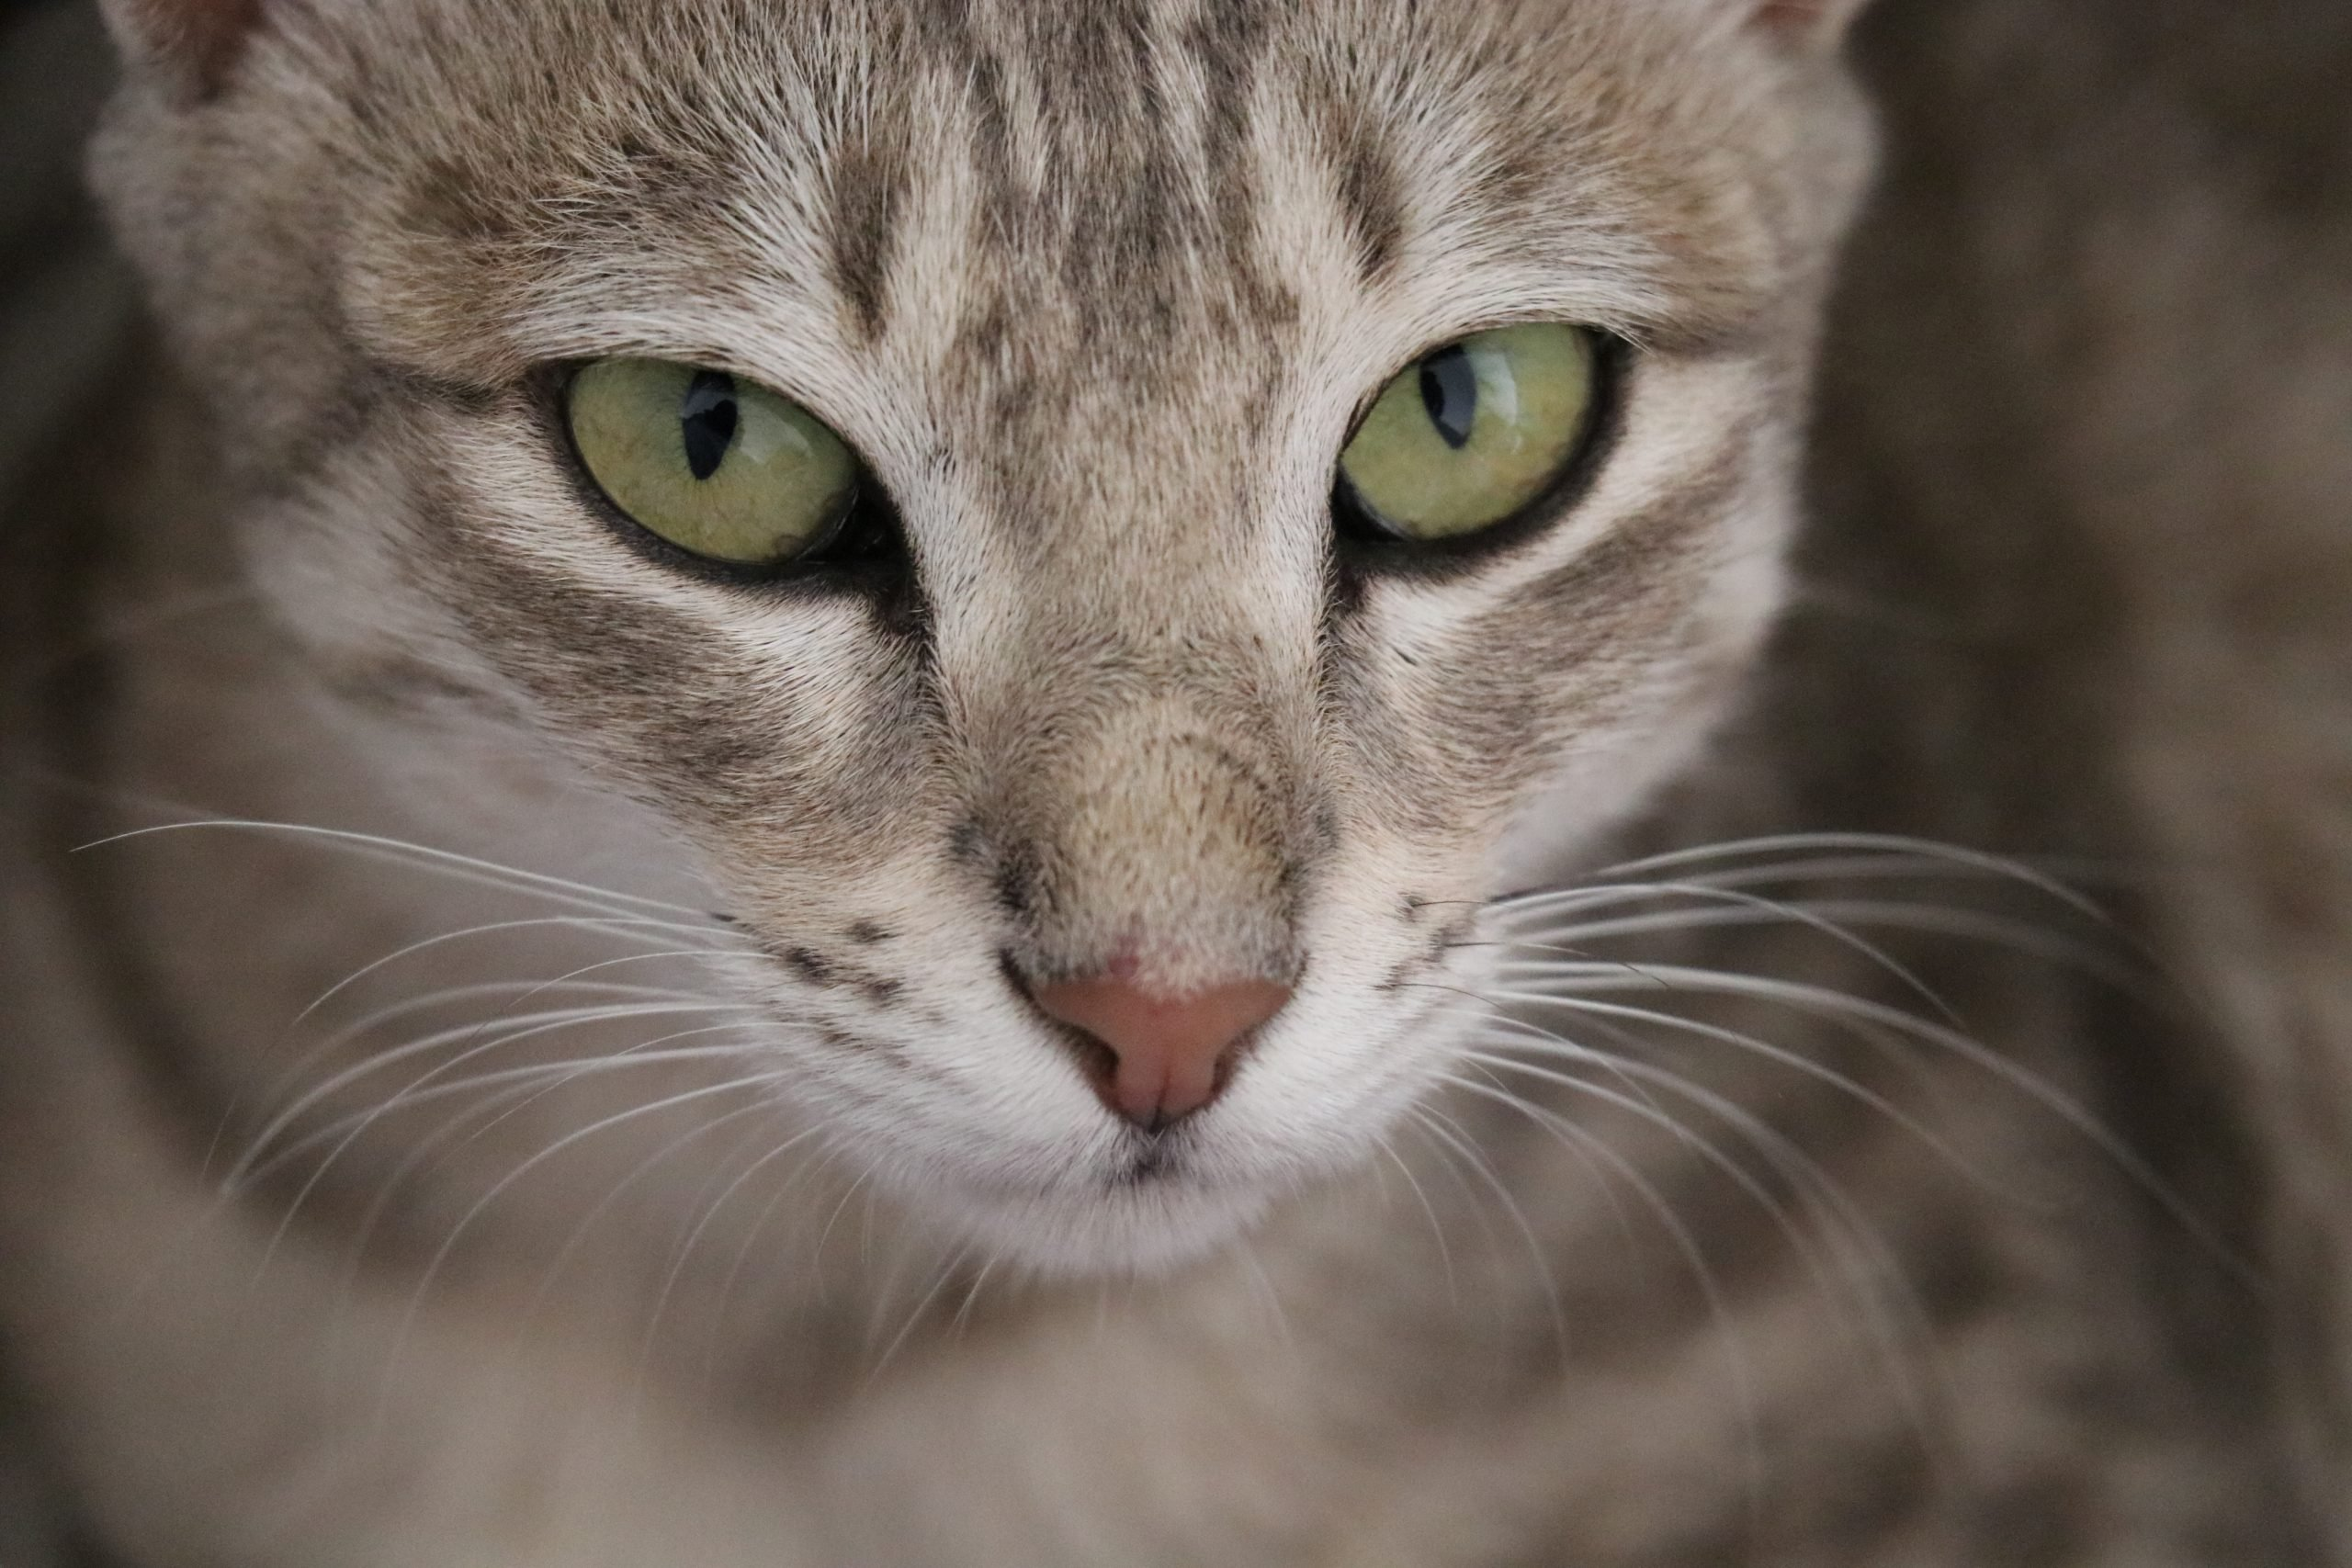 A cat with greenish eyes